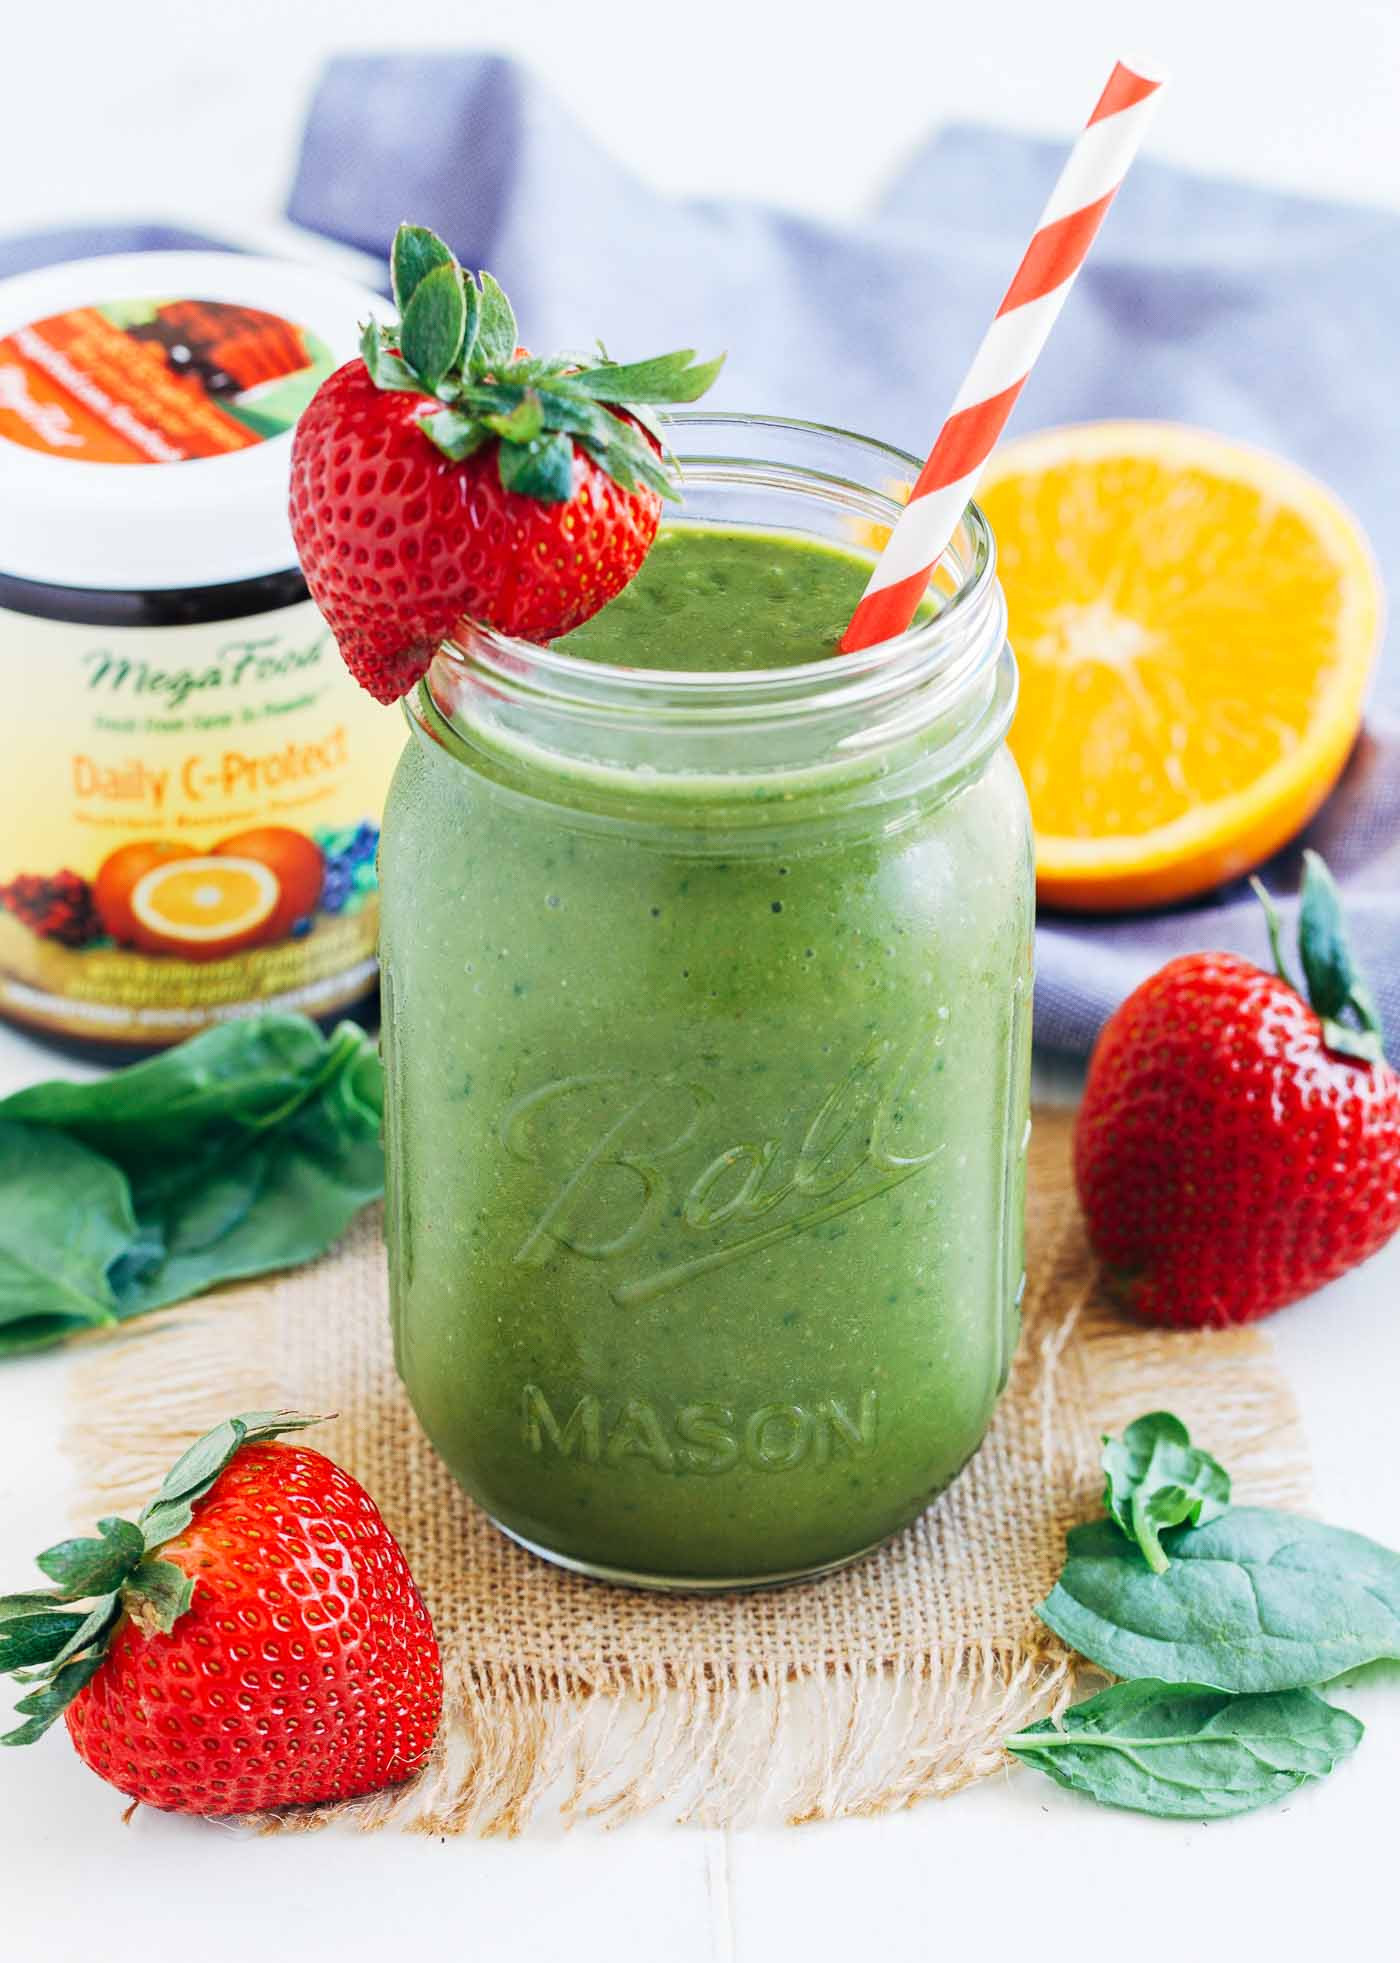 Healthy Smoothies With Spinach  Strawberry Mango Spinach Smoothie Making Thyme for Health